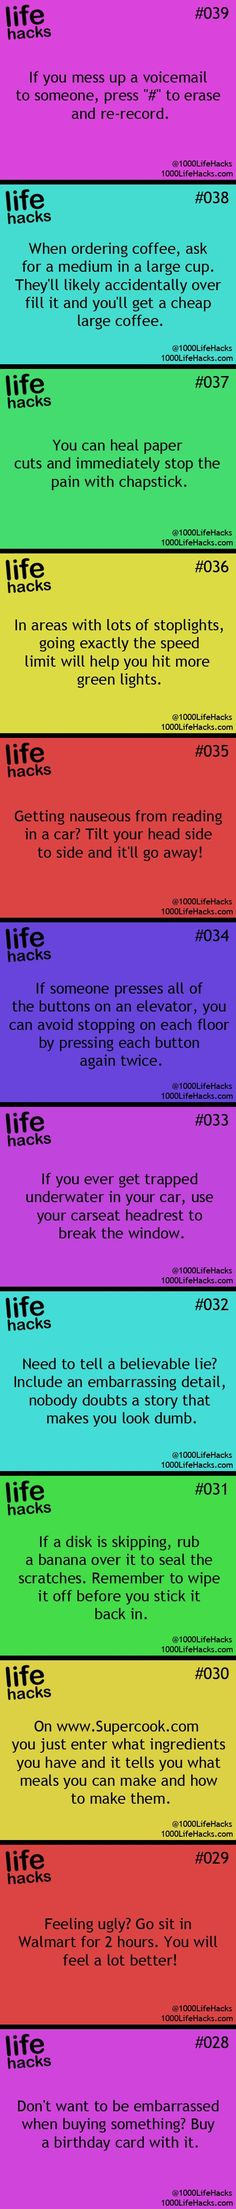 Life hacks-last one is best!